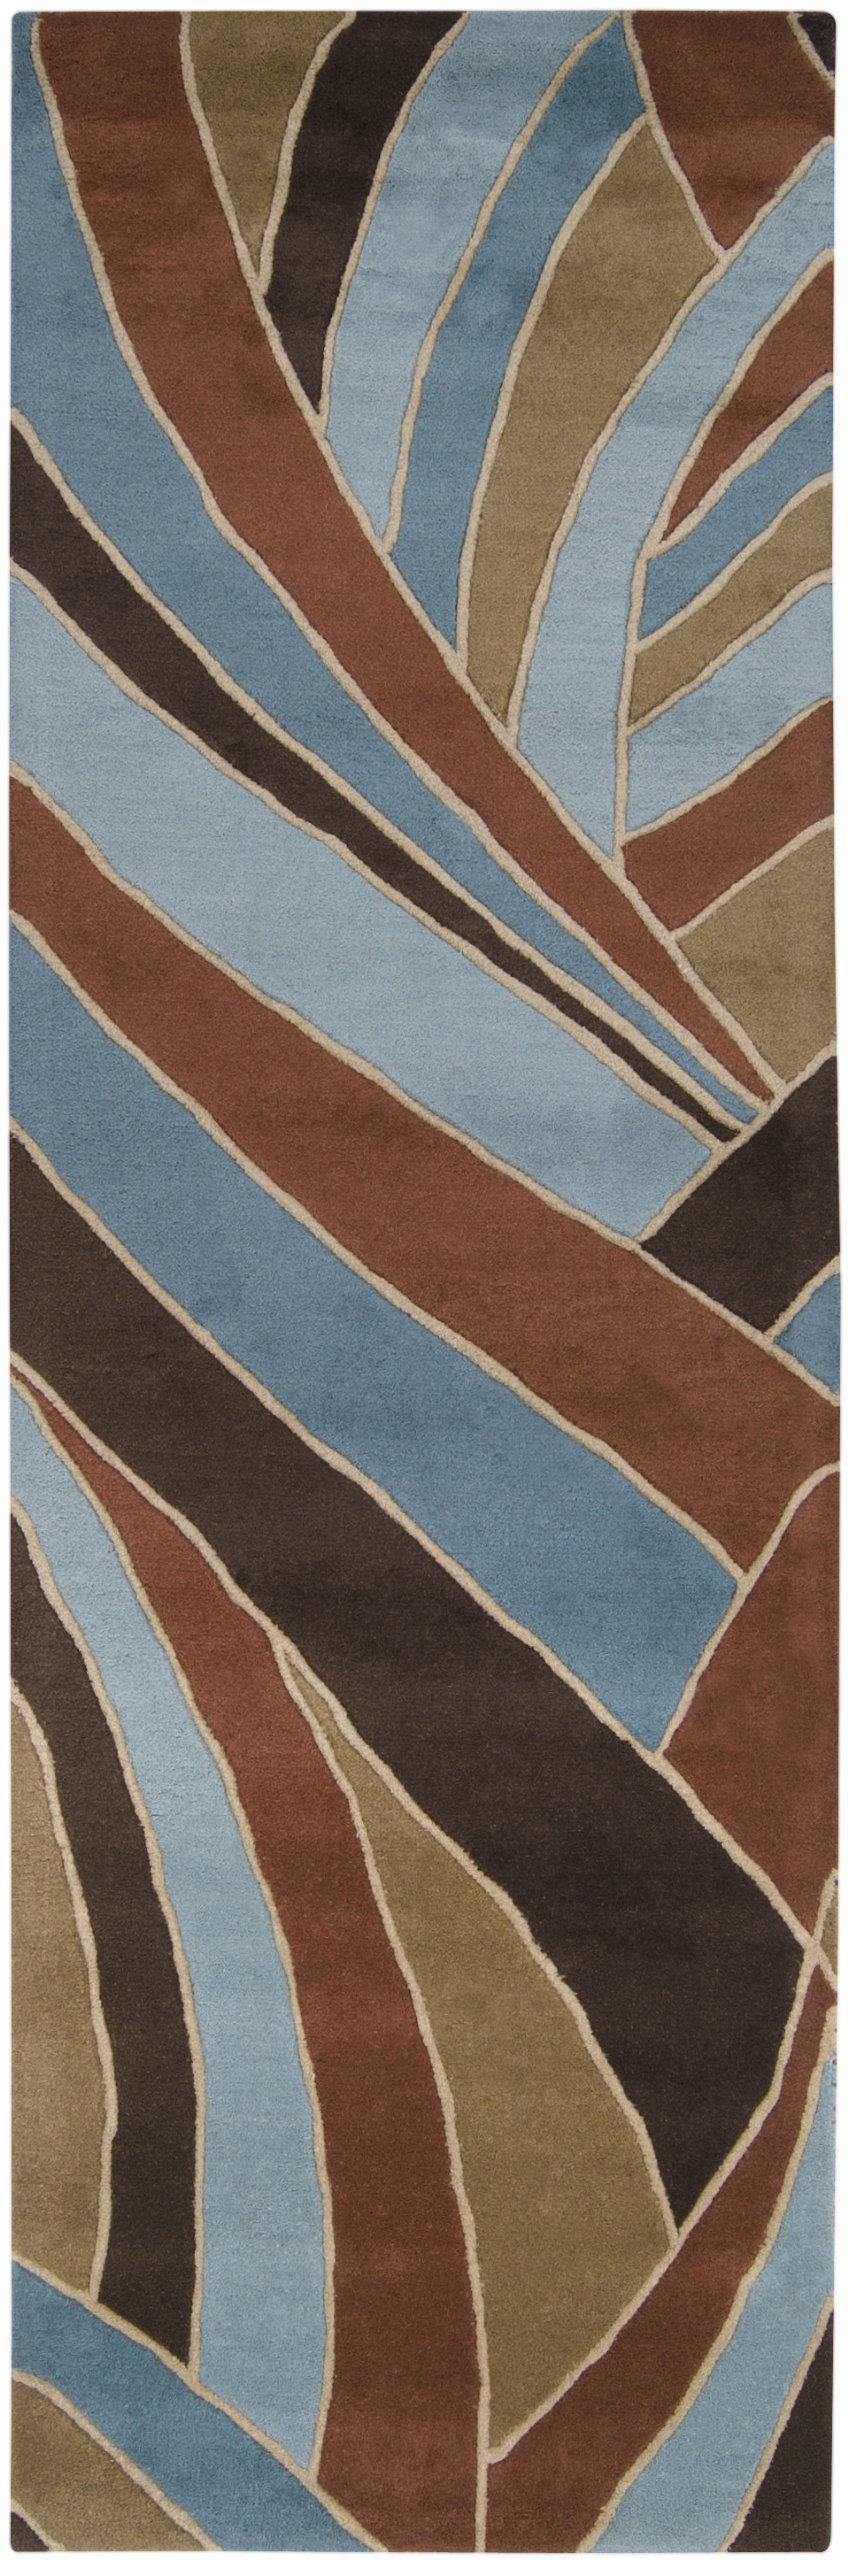 Surya Forum FM-7002 Contemporary Hand Tufted 100% Wool Russet 2'6'' x 8' Abstract Runner